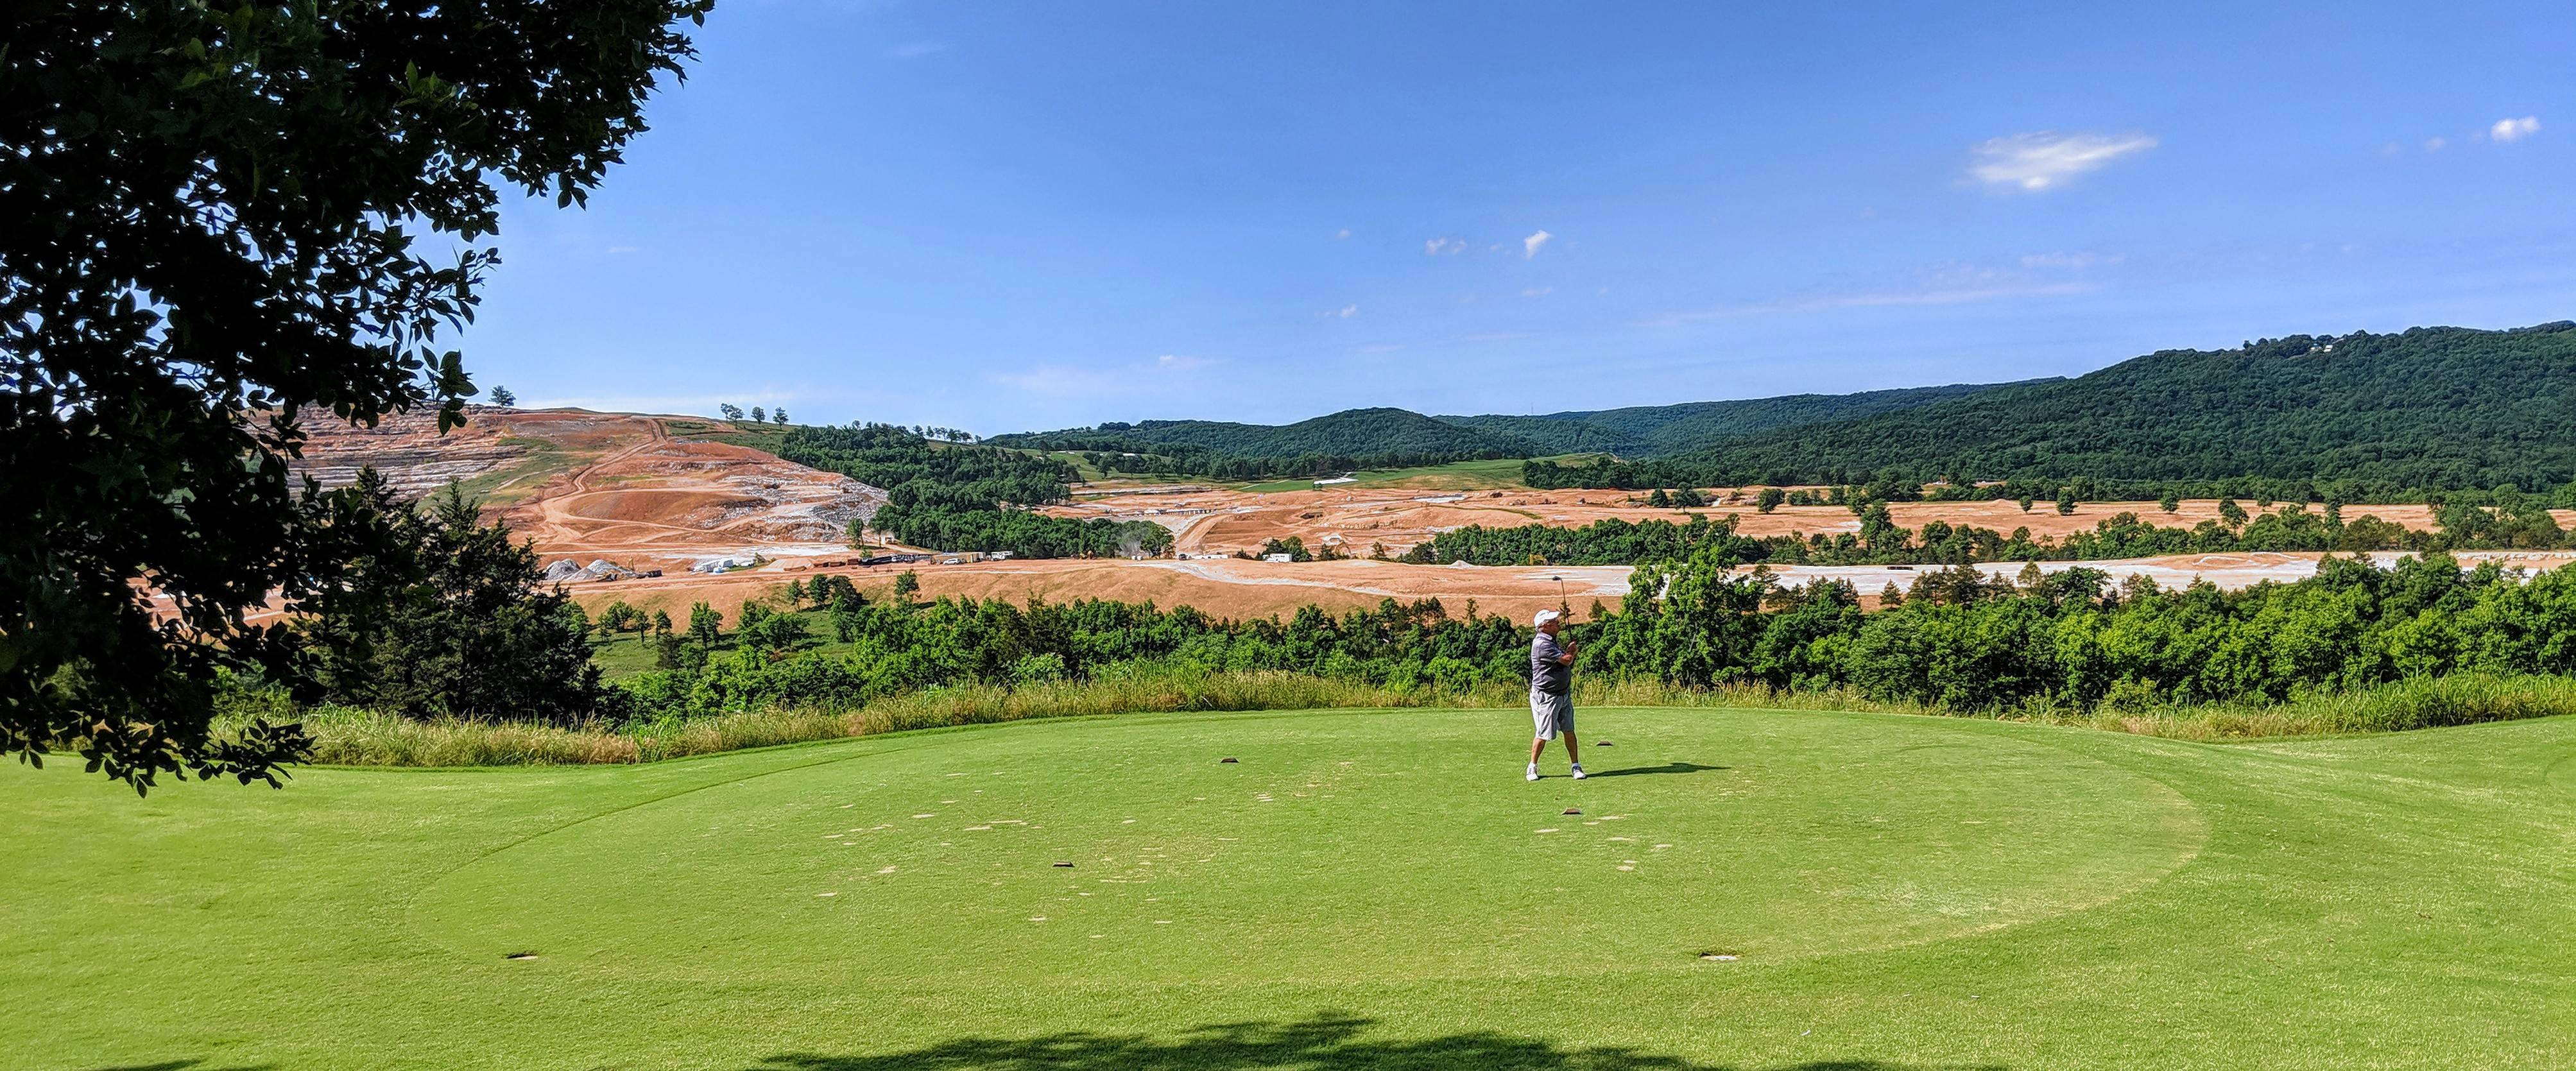 Why the Missouri Ozarks will be the world's next great golf destination